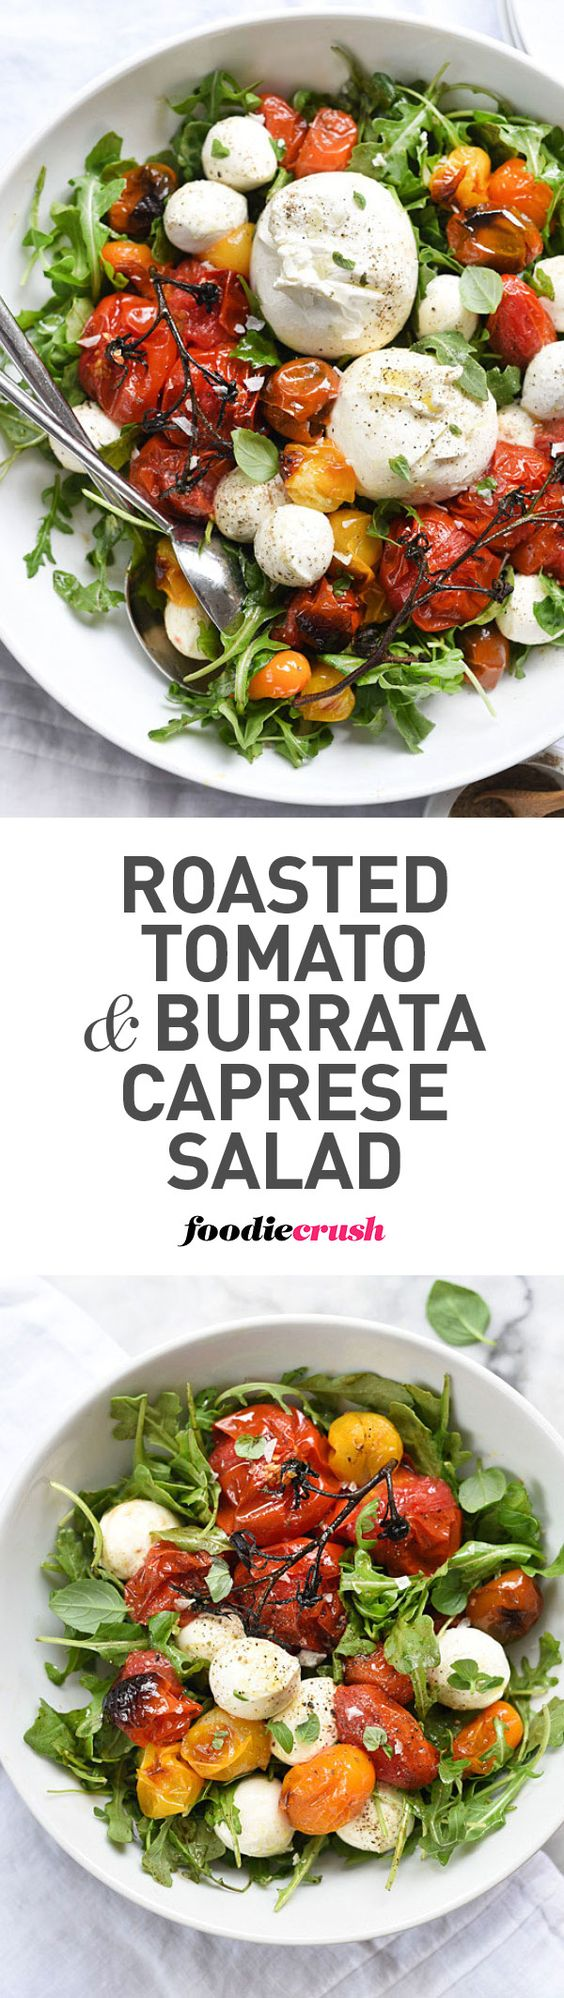 Roasted tomatoes make this caprese salad a favorite all year long ...